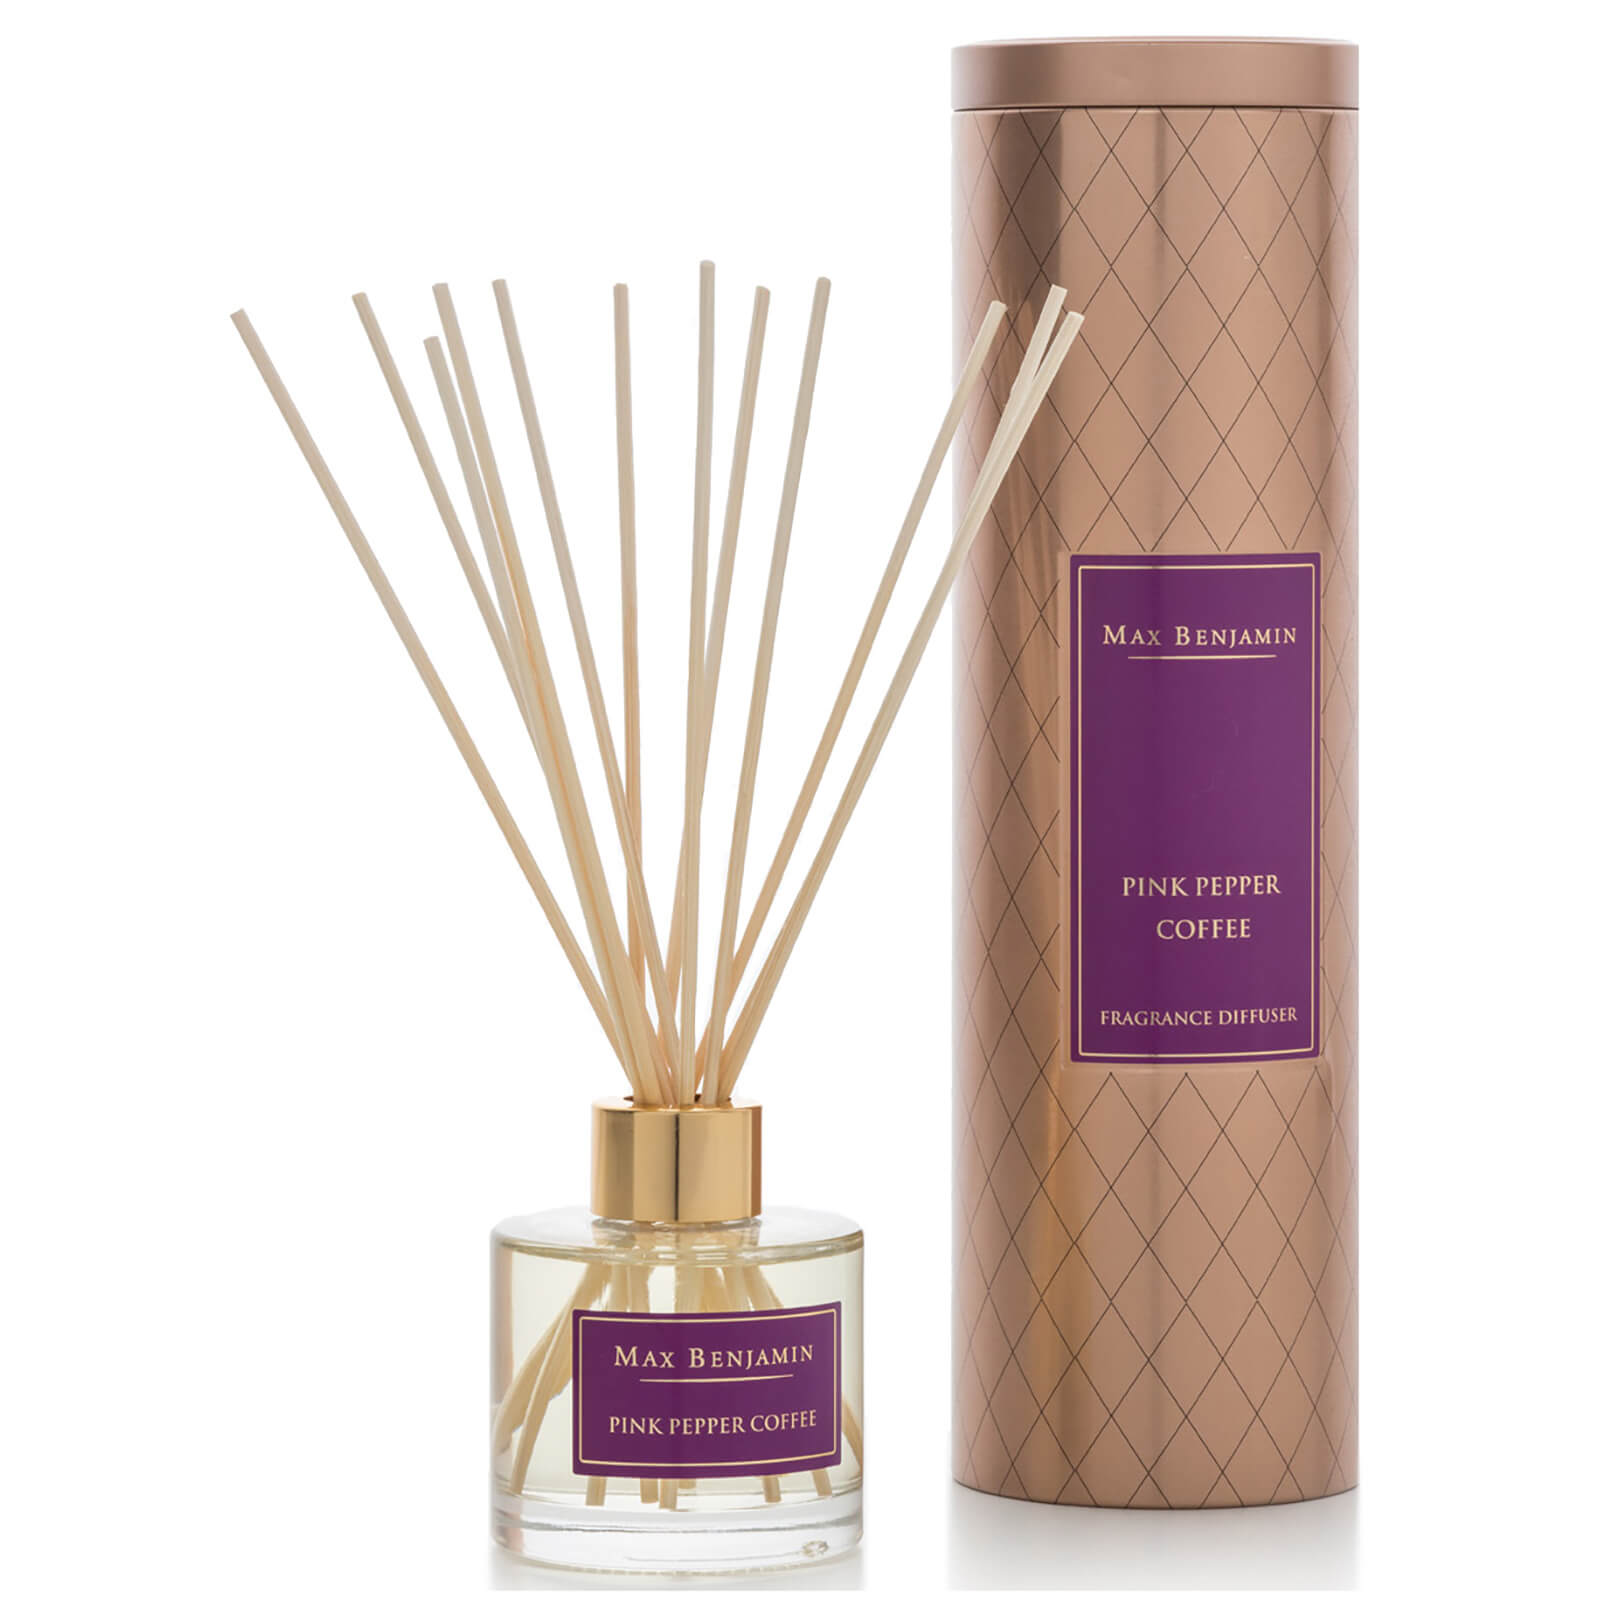 Max Benjamin Fragrance Diffuser - Pink Pepper Coffee